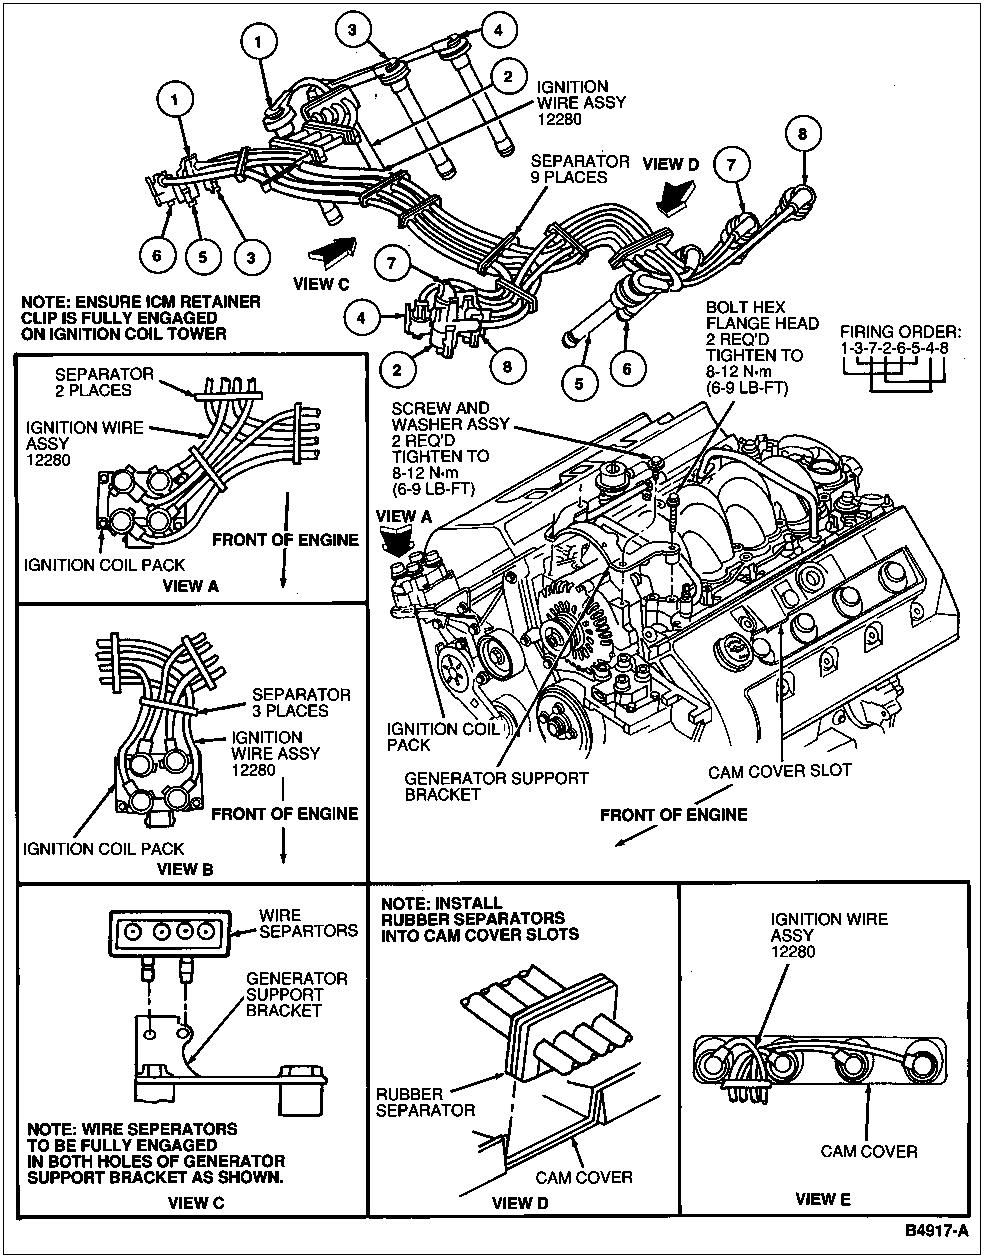 2000 Lincoln Continental Wiring Diagram Library 94 Mark Viii Need Help Please Lincolns Online Message Forum Problems 8